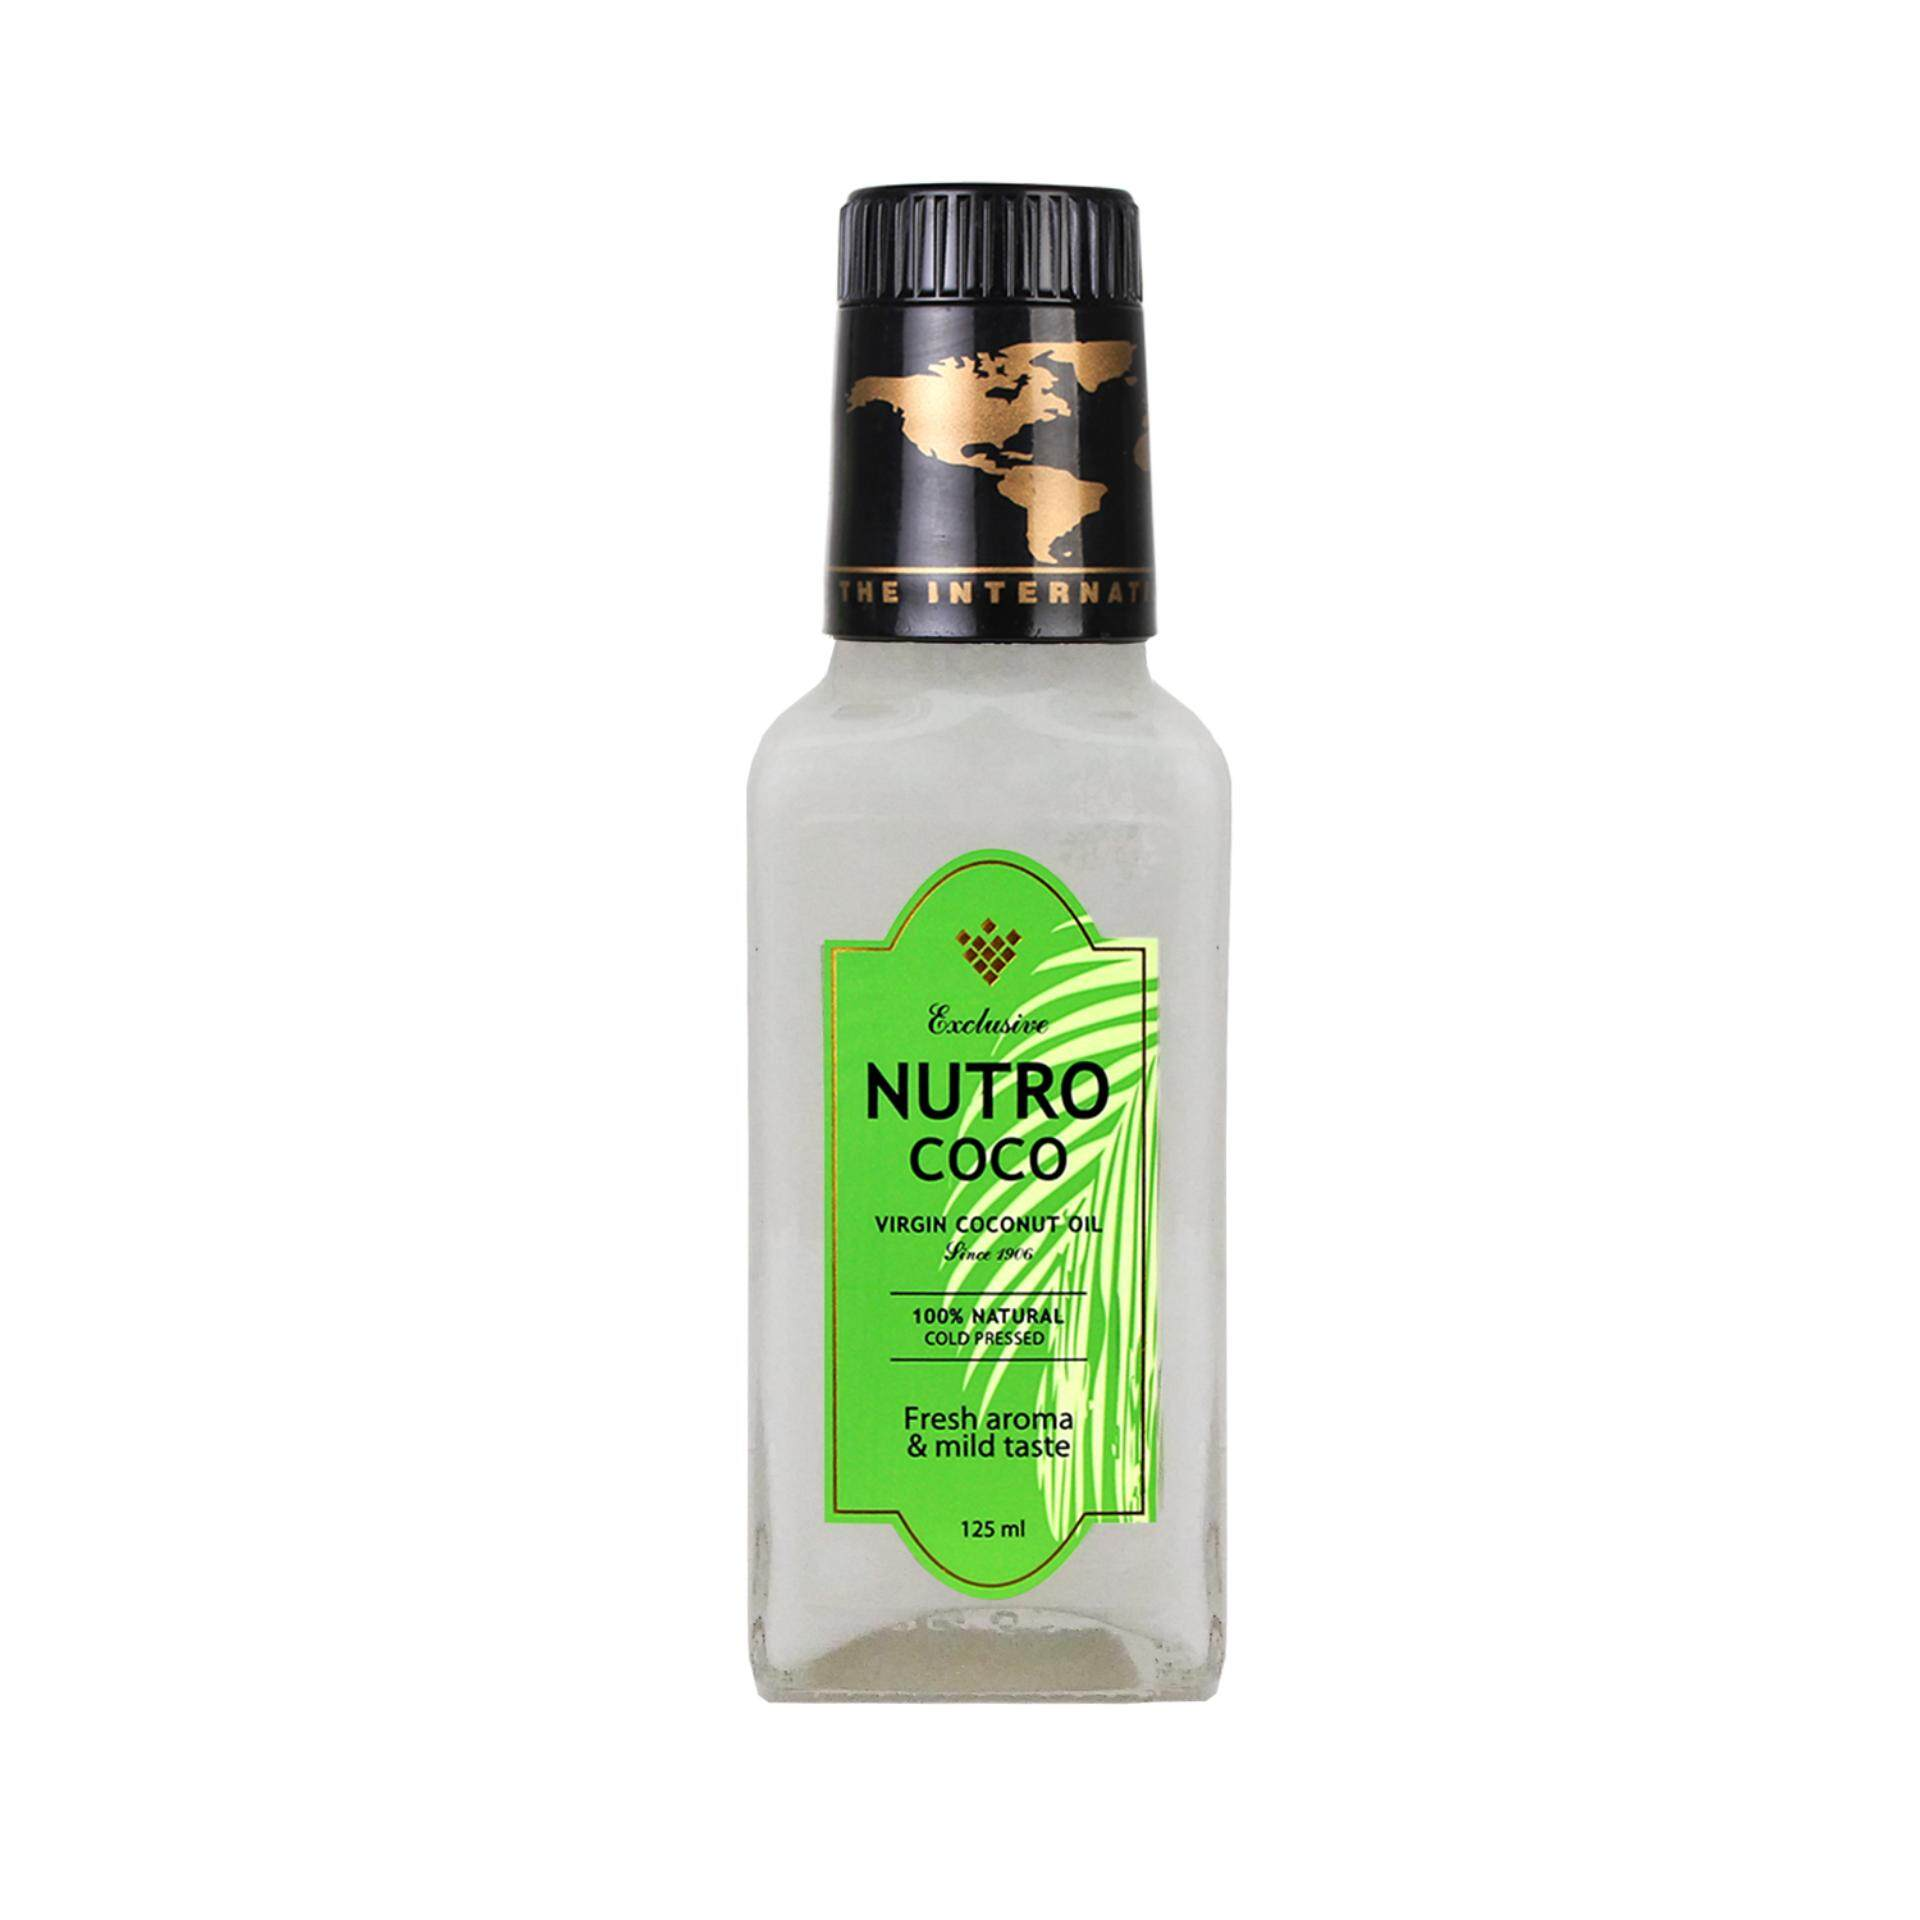 Nutrococo Virgin Coconut Oil 125ml cold pressed 100% natural exclusive made in Malaysia